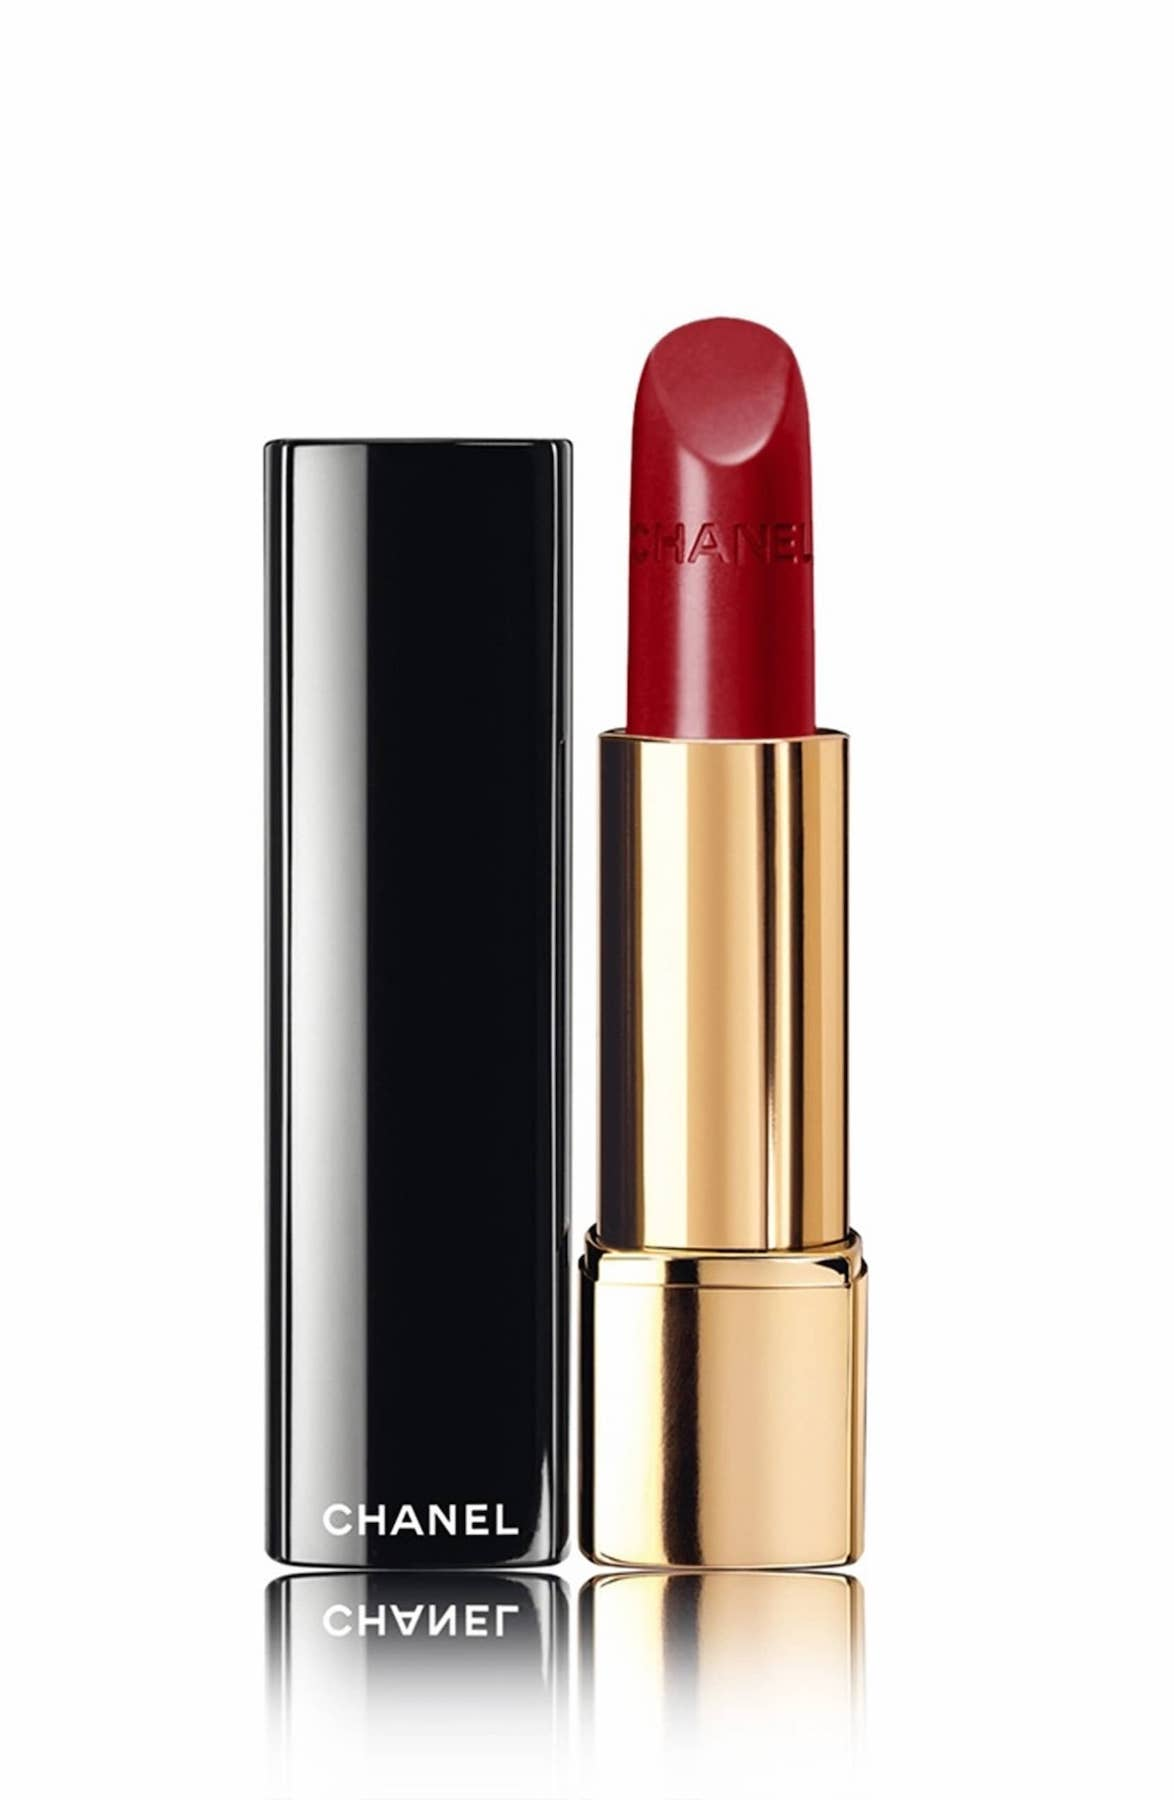 Chanel Rouge Allure Red Lipstick in Pirate